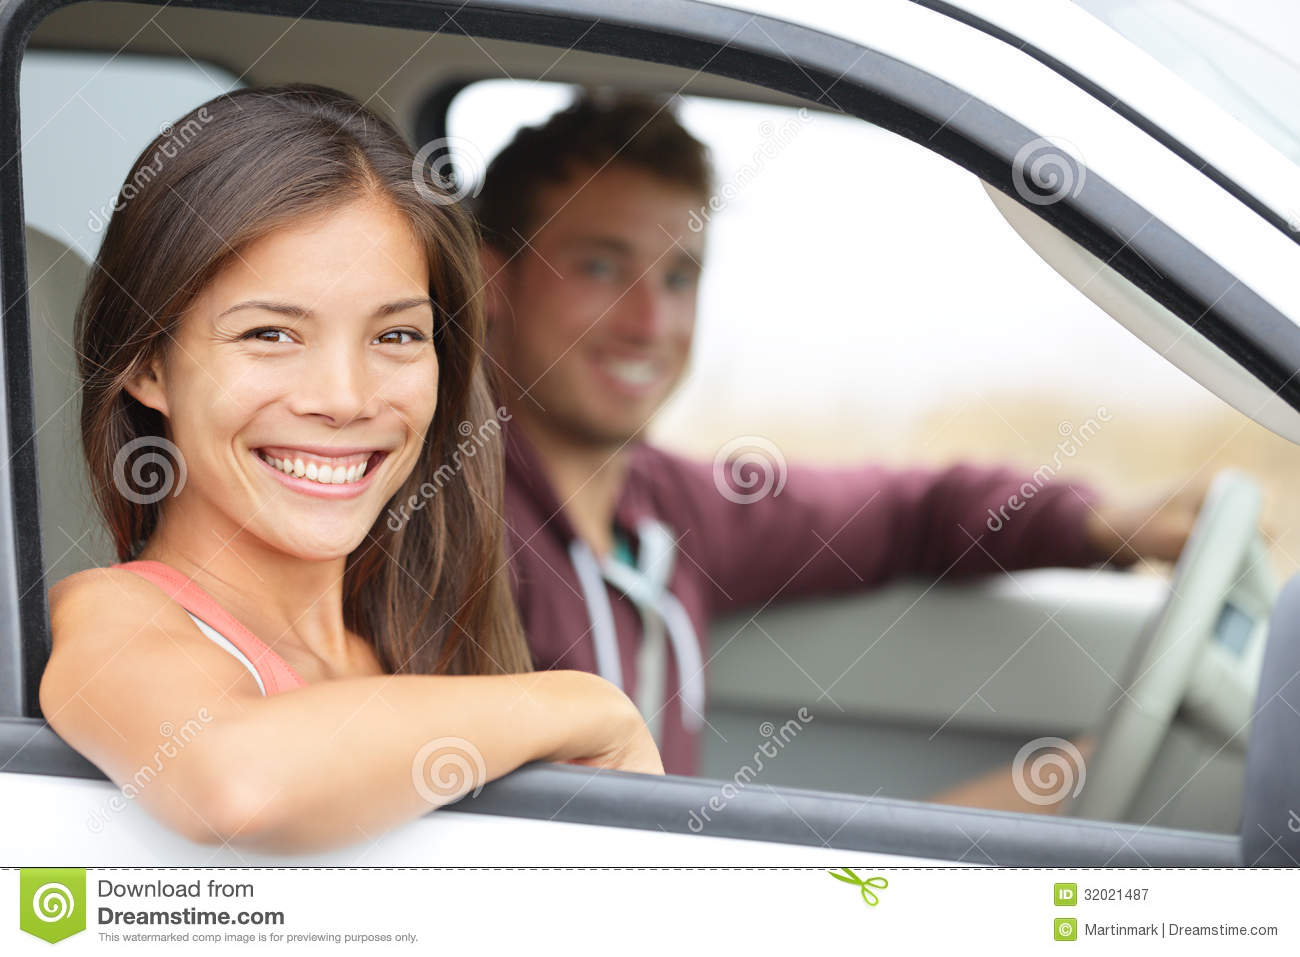 Cars - couple driving in new car smiling happy